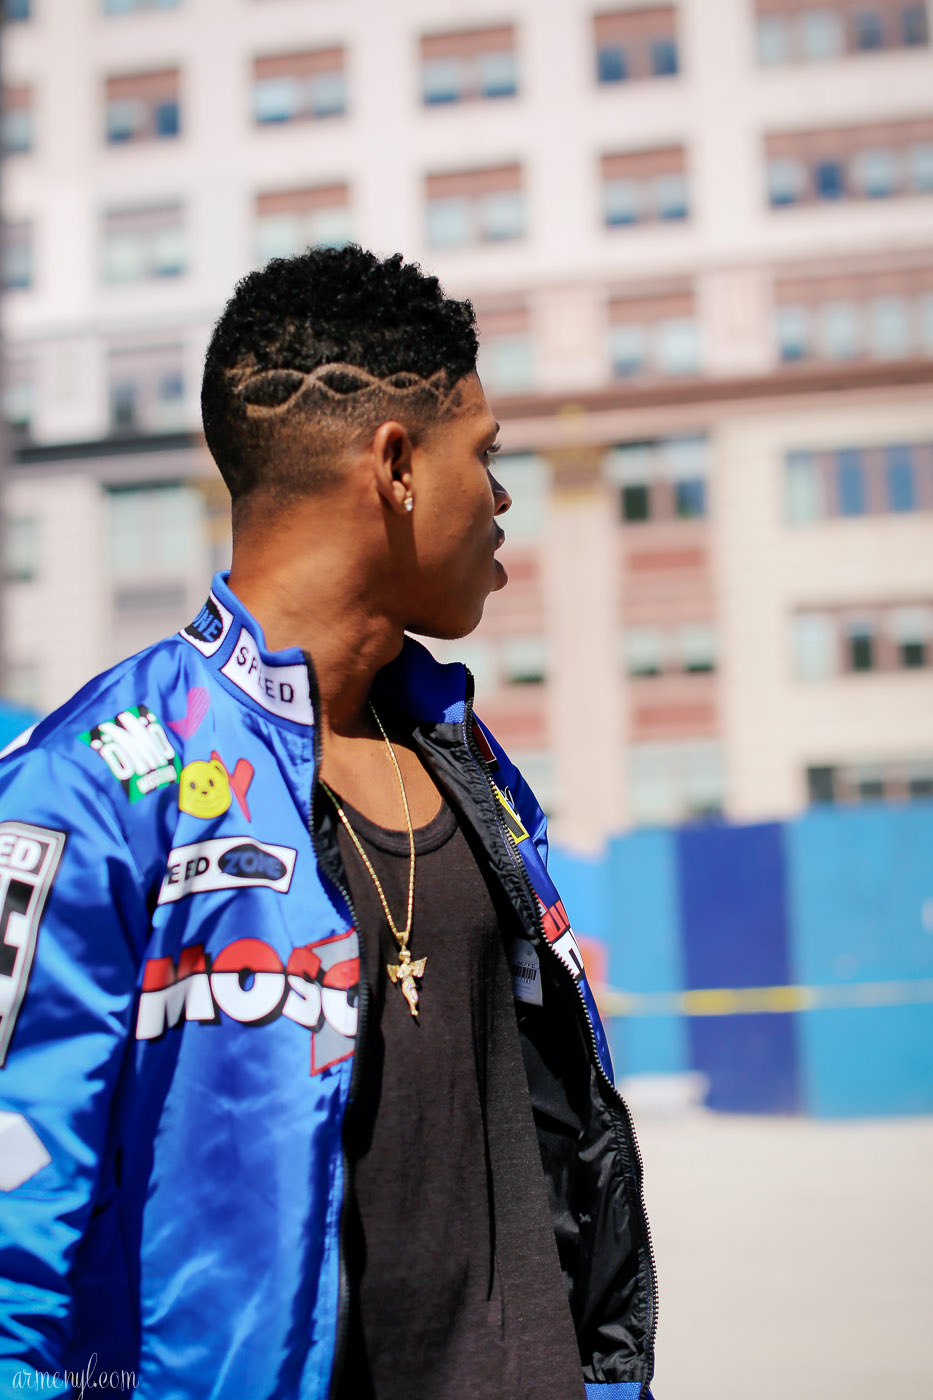 Empire's Bryshere Gray, Hakeem Lyon, is seen outside the Jeremy Scott show Photo by Fashion Photographer Armenyl.com